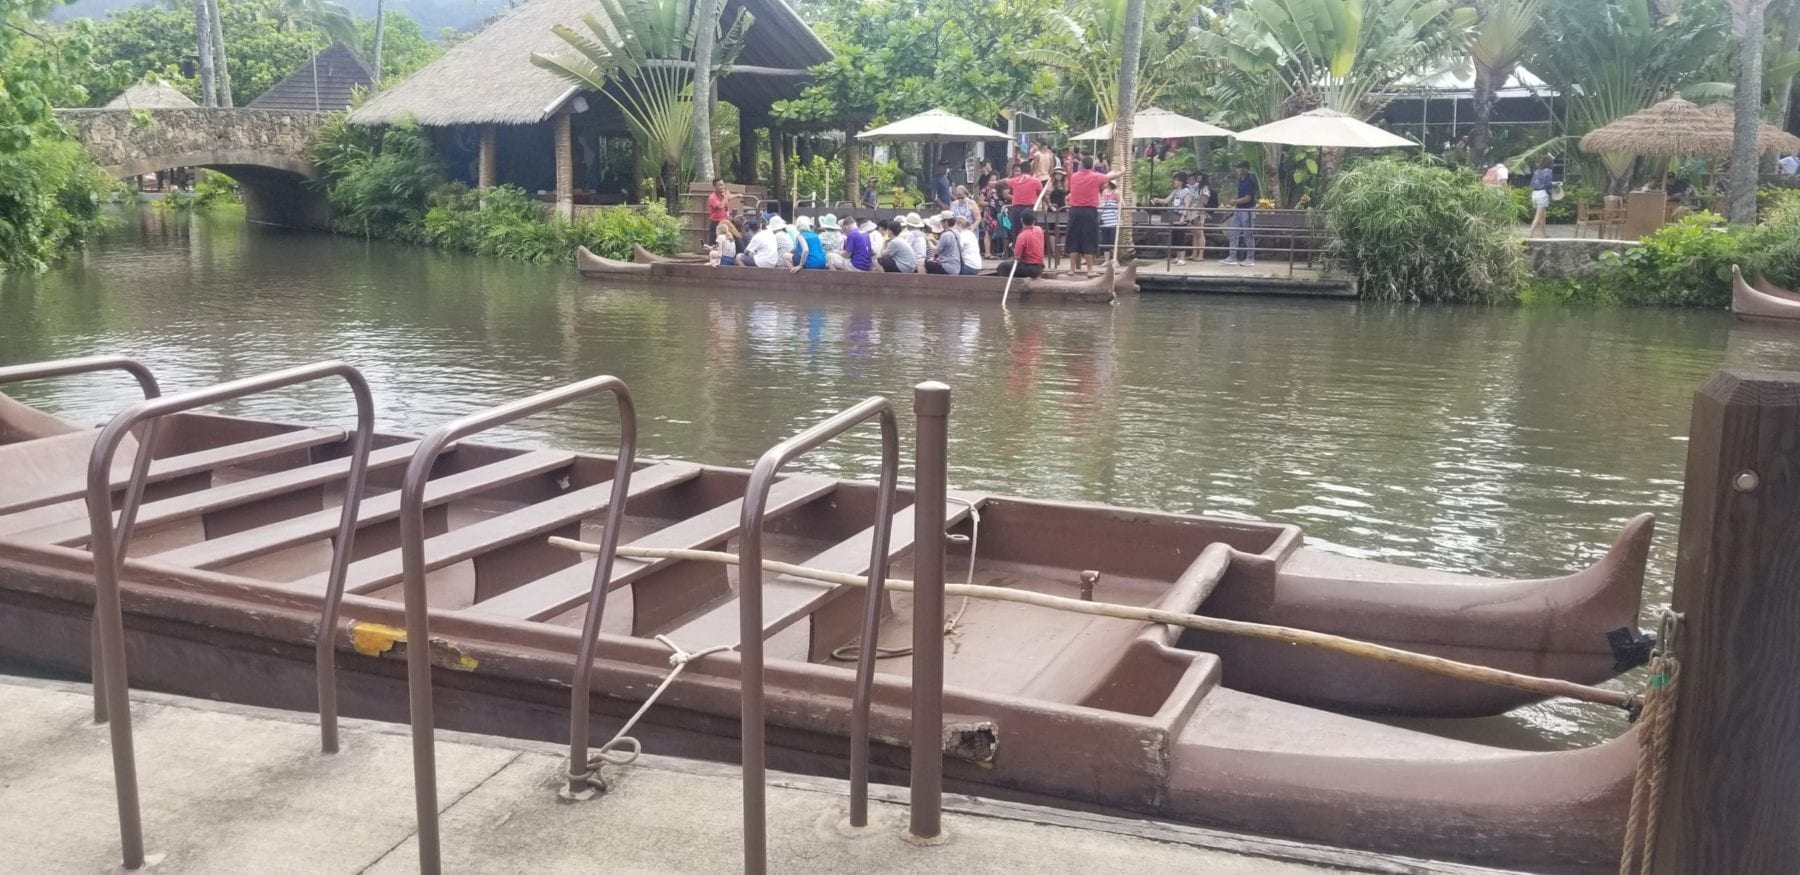 Canoe Tour at the Polynesian Culture Center